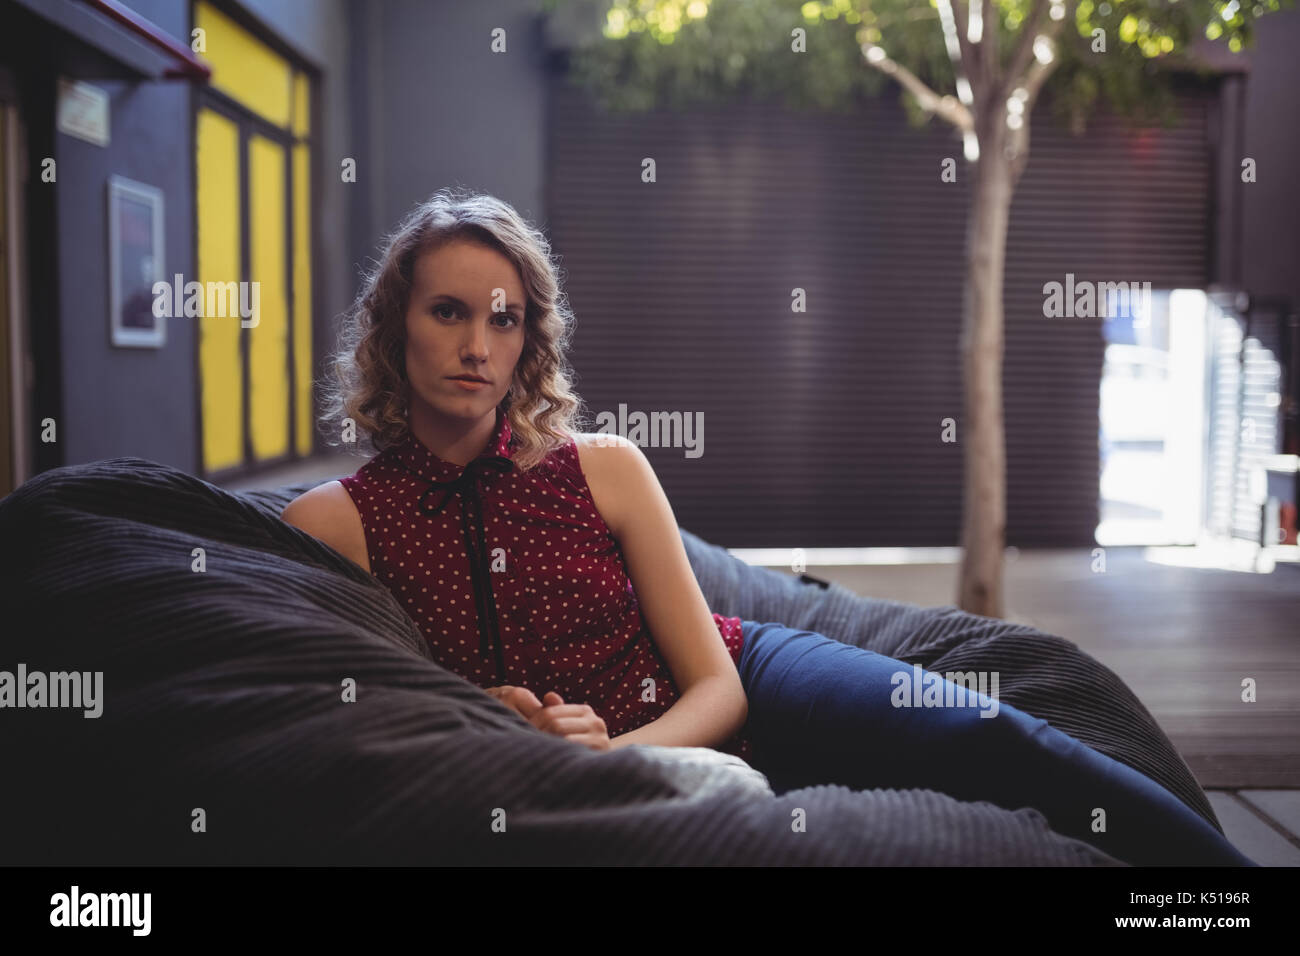 Portrait of beautiful young female customer sitting on bean bag against wall - Stock Image